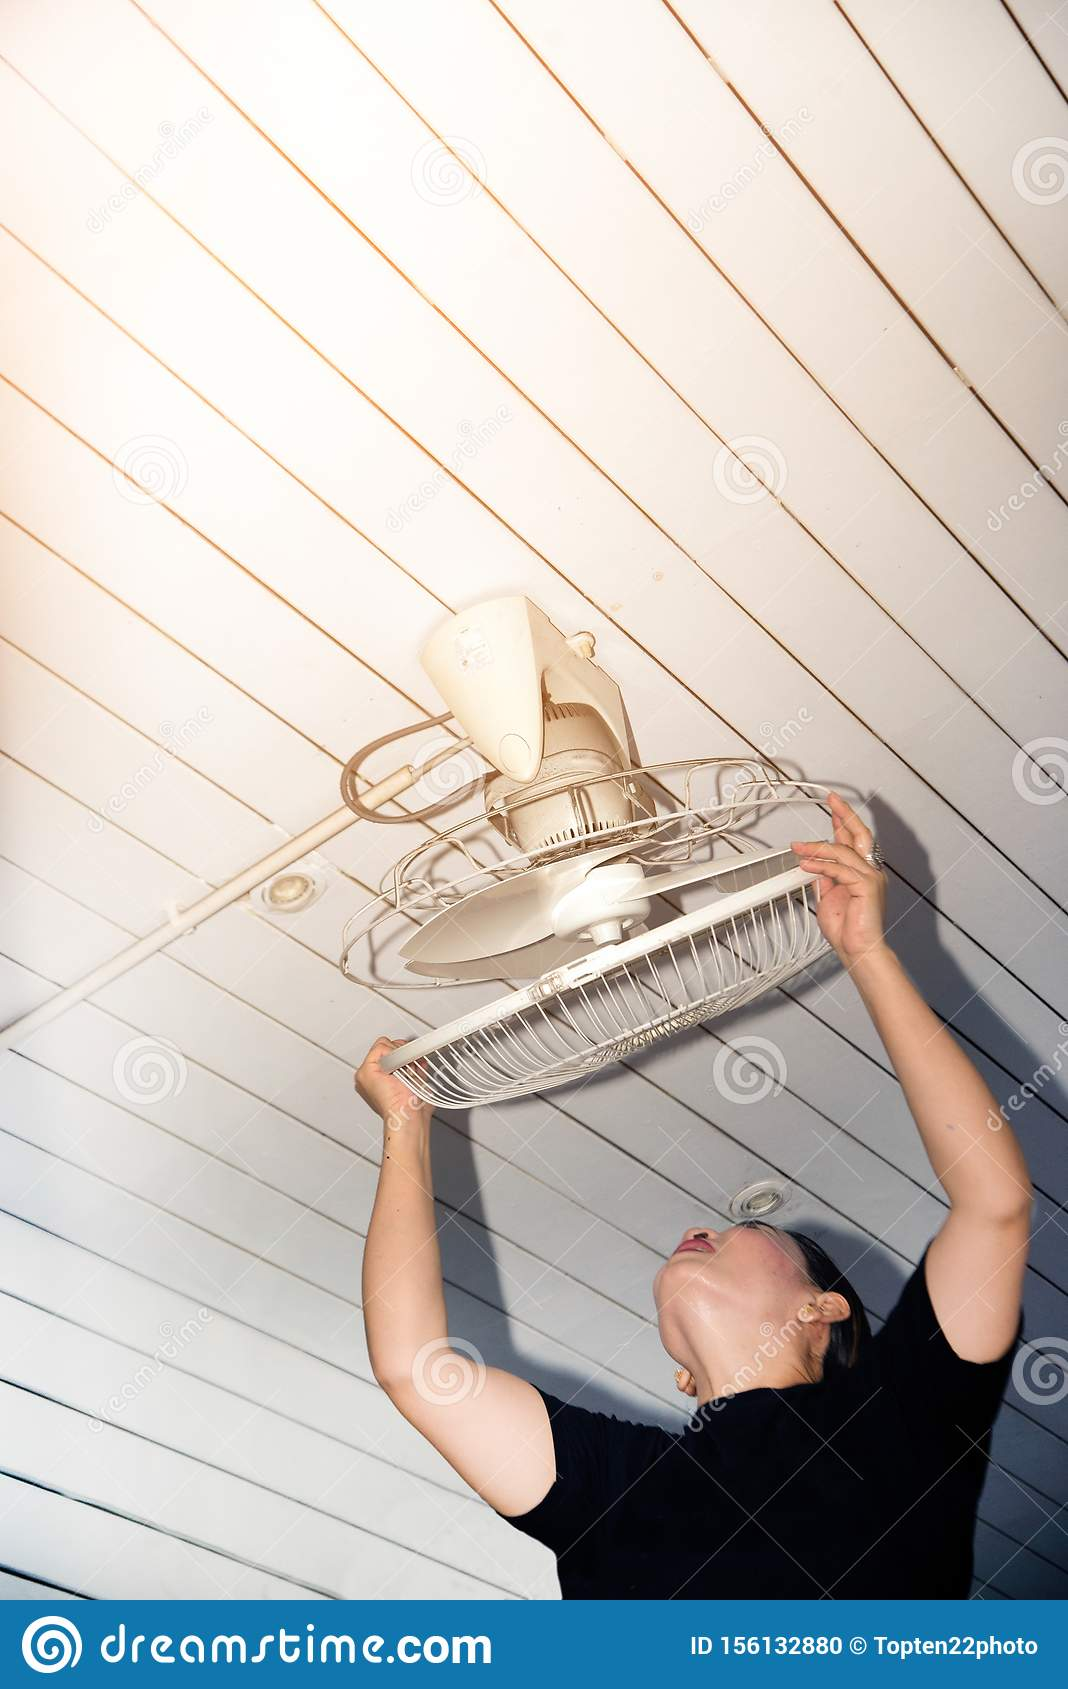 The Maidservant Is Installing And Cleaning The Ceiling Fan